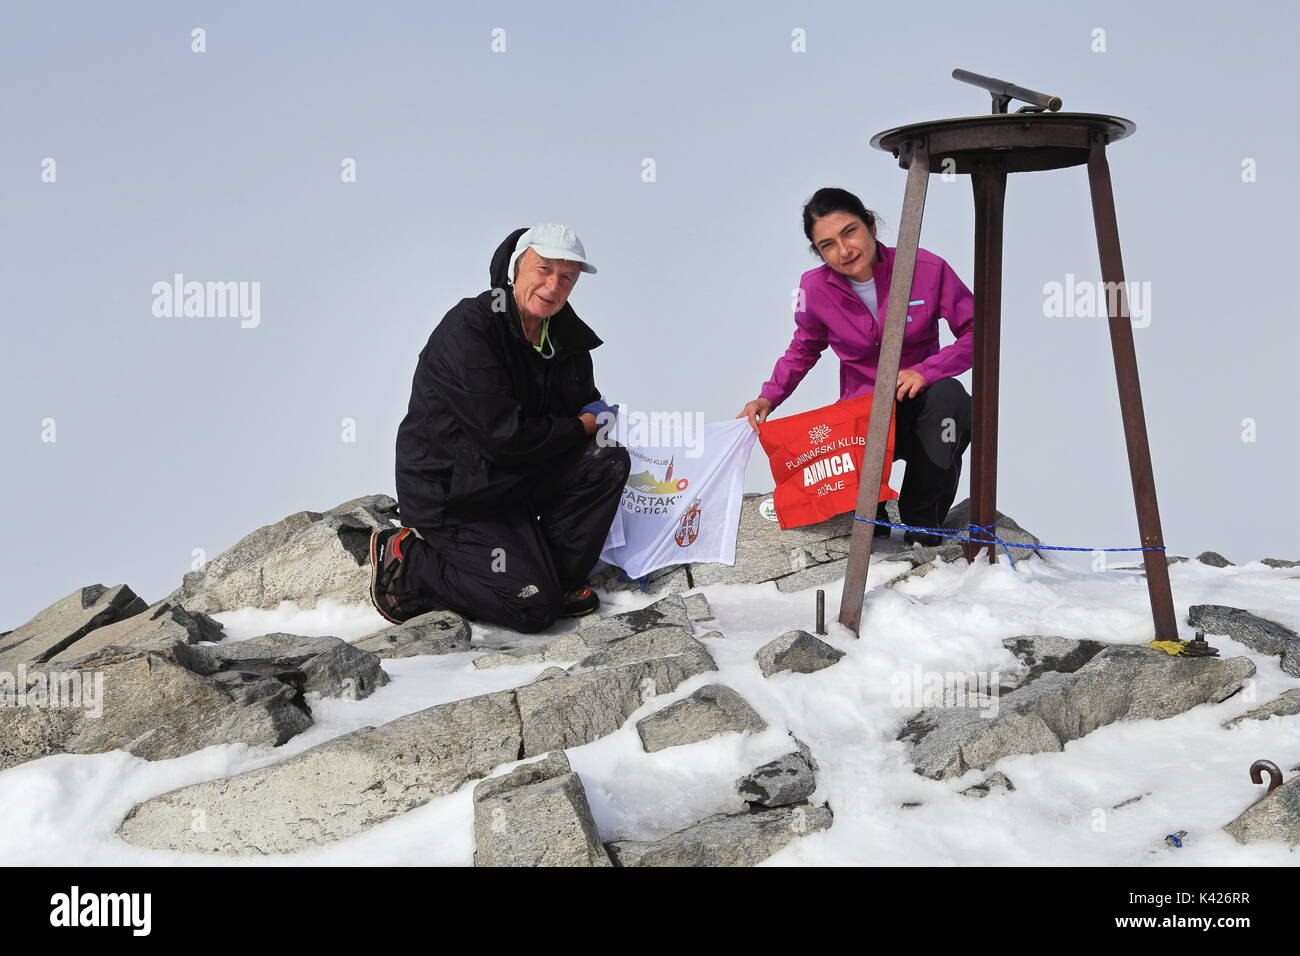 Hikers on top of Galdhopiggen the highest point of Norway and Scandinavia and Northern Europe - Stock Image